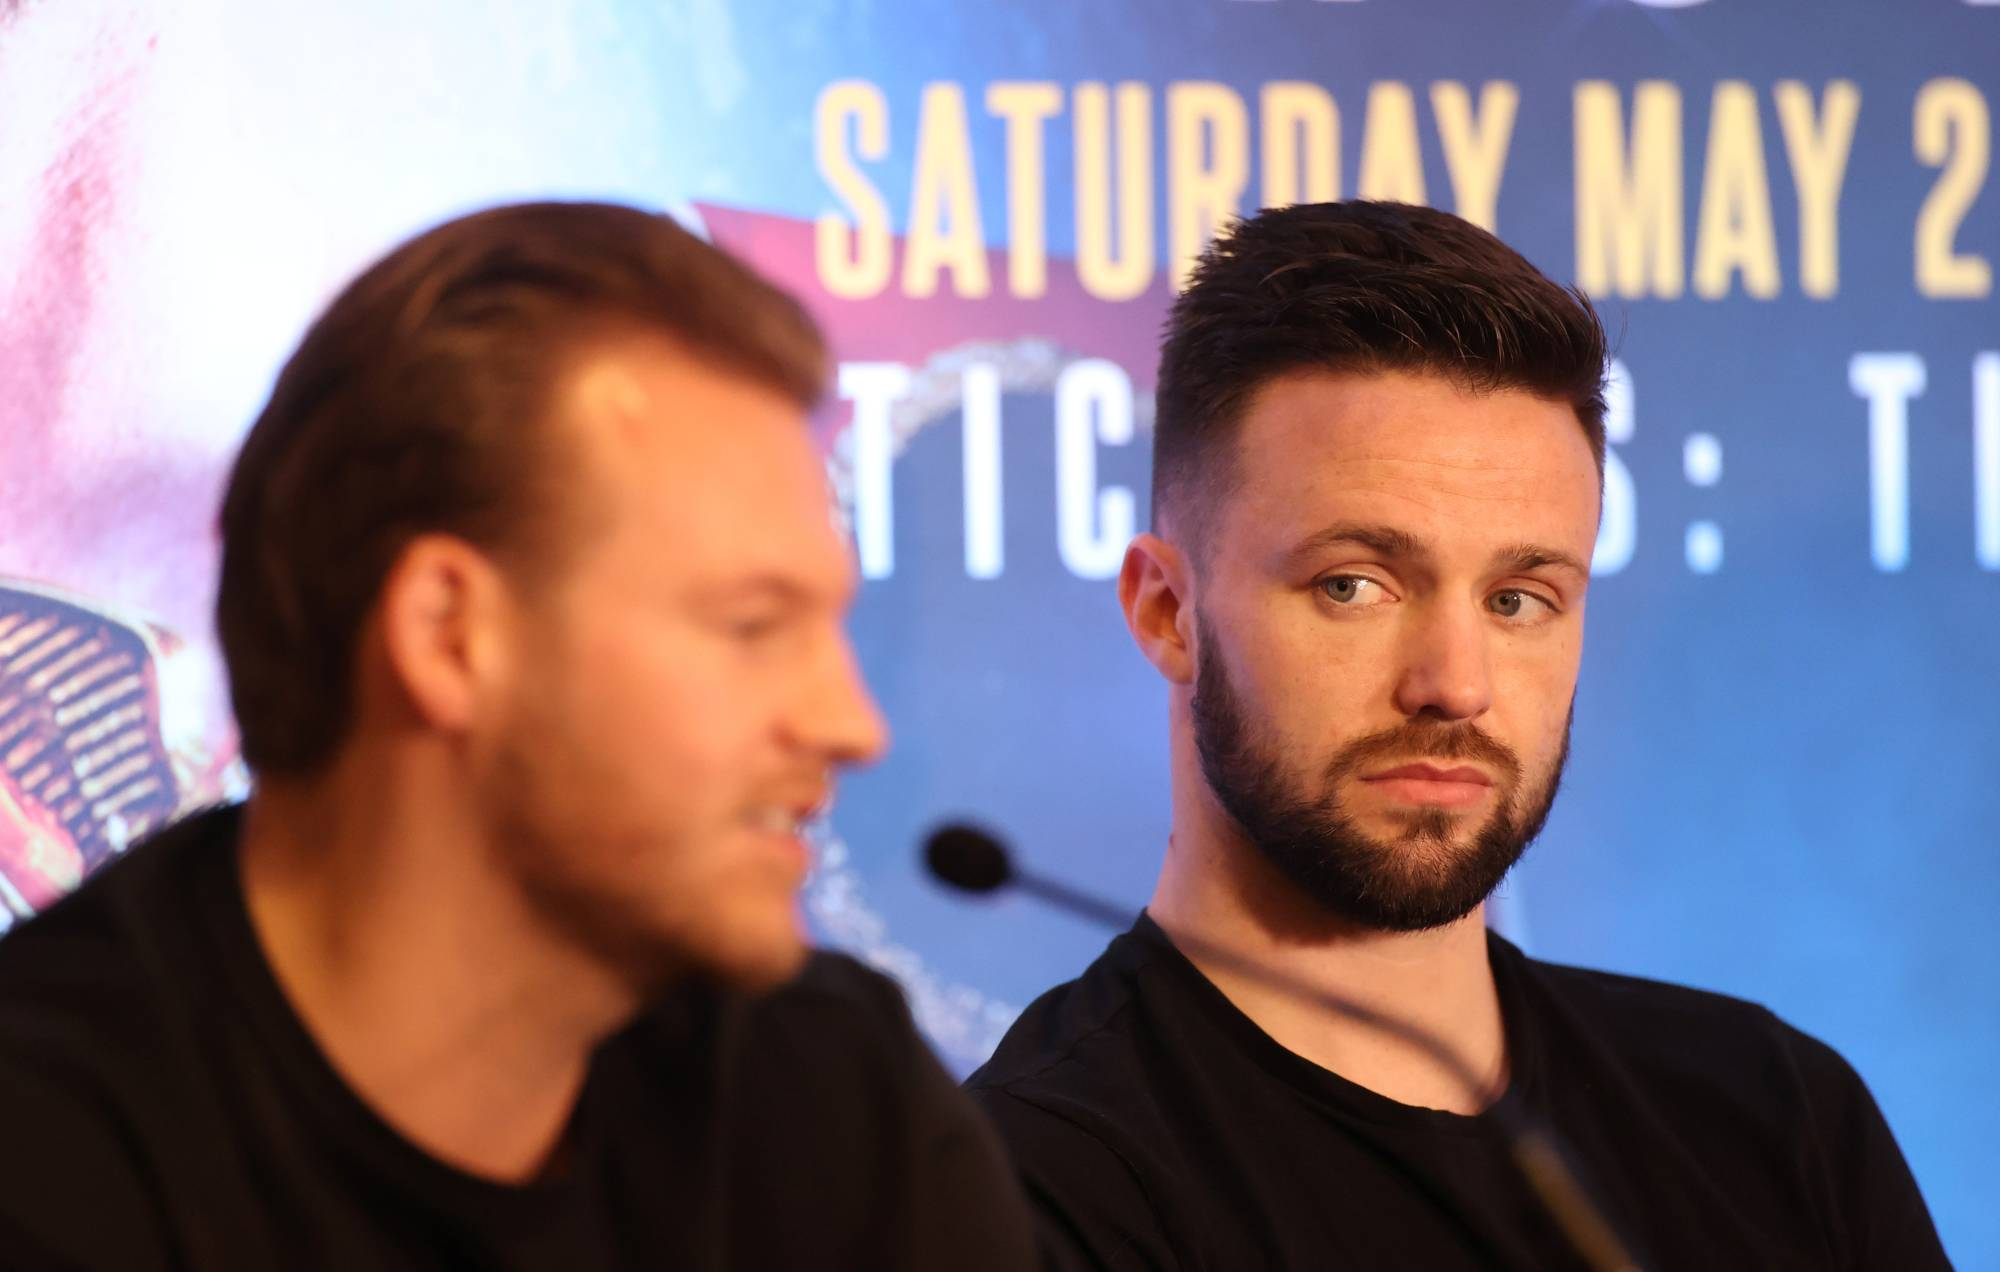 Josh Taylor (right) looks on during a news conference promoting his May 2 fight against Apinun Khongsong on March 4 in Glasgow, Scotland. | REUTERS